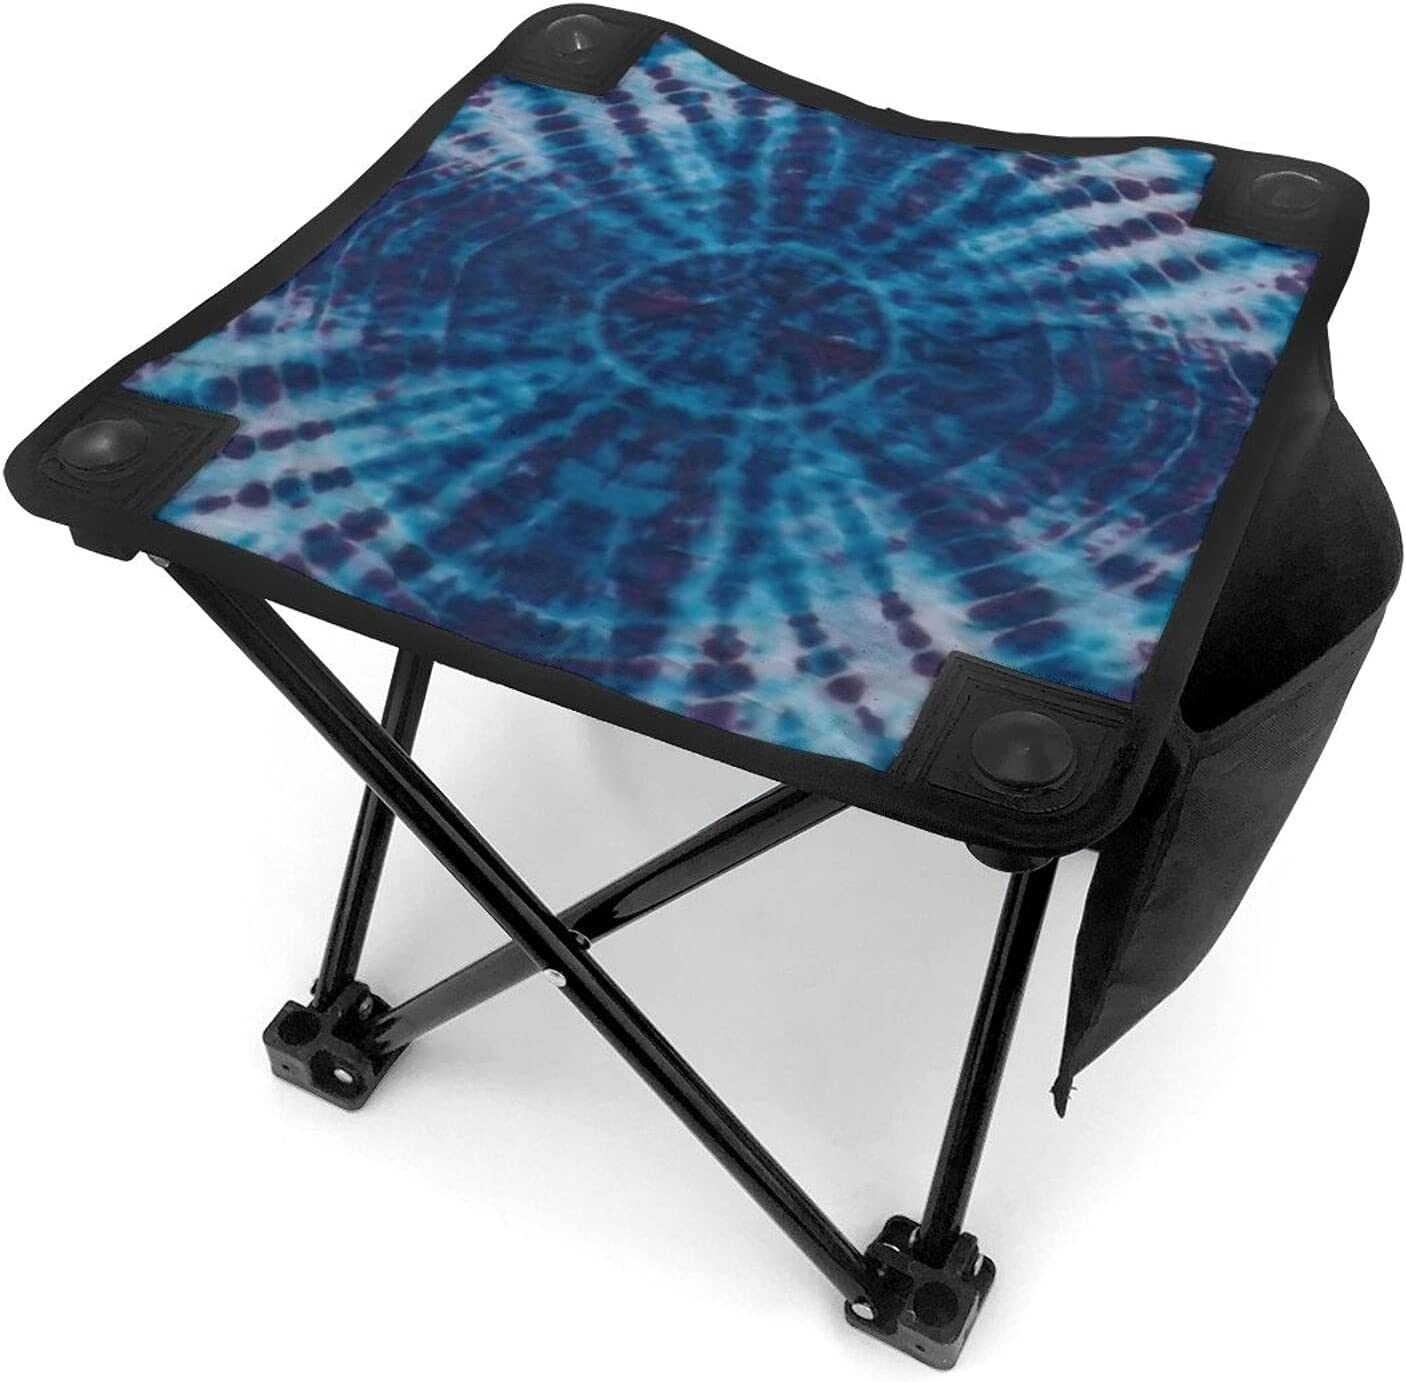 Blue Tie Dye half Small Lightweight Carry with Max 74% OFF Folding Stool Camping